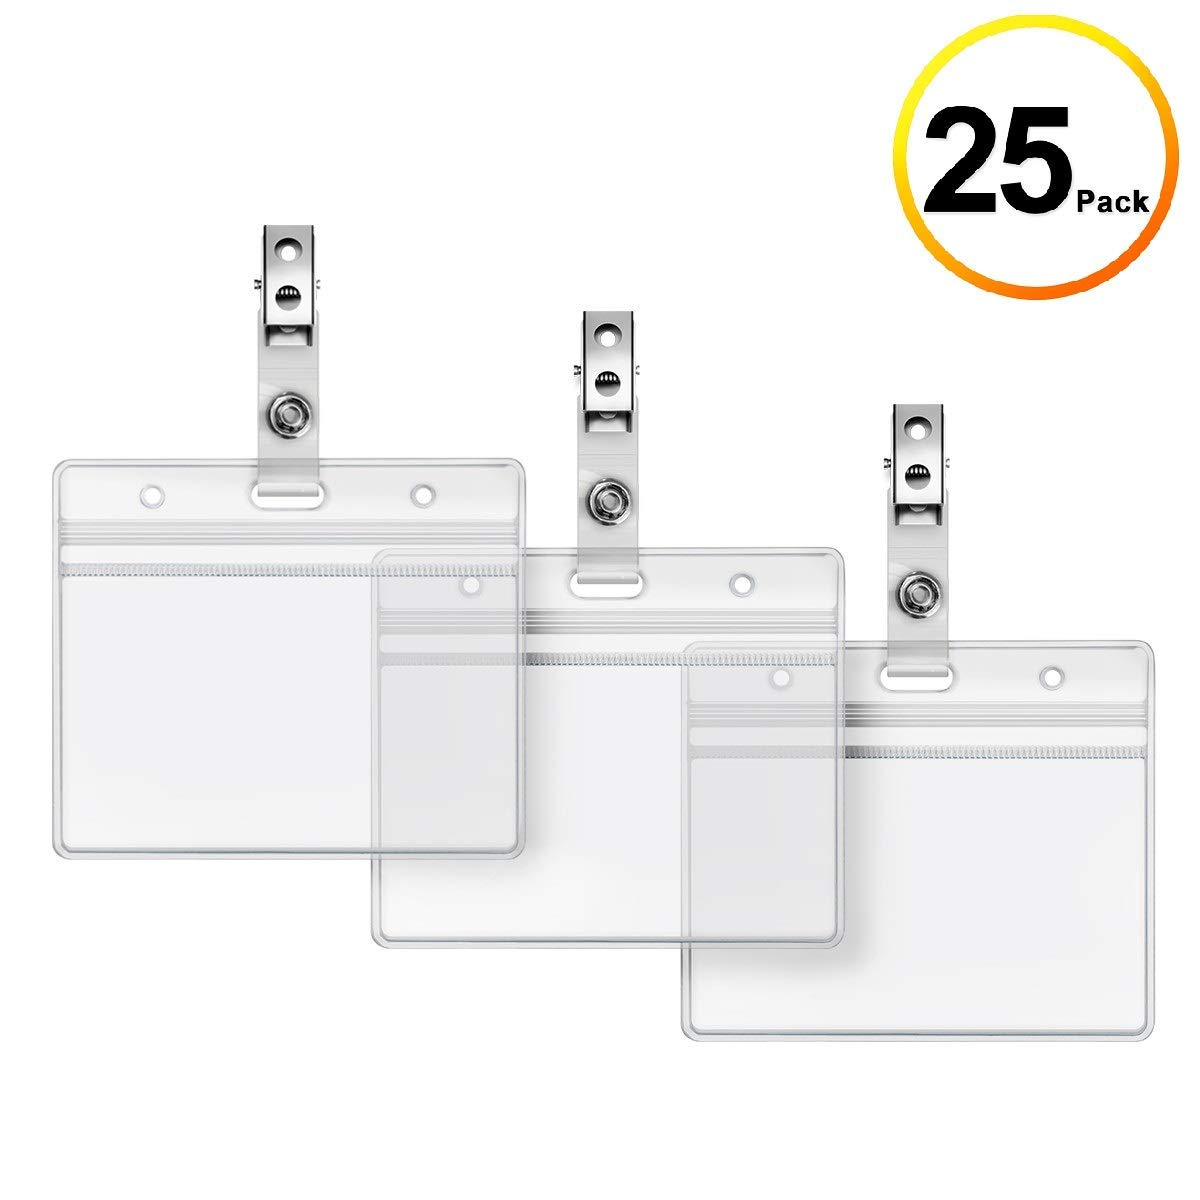 Just 3pcs Hard Plastic Double-faced Card Holder Transparent Clear Horizontal Id Badge Holders Card Cover Easy Access Thumb Notch Desk Accessories & Organizer Card Holder & Note Holder